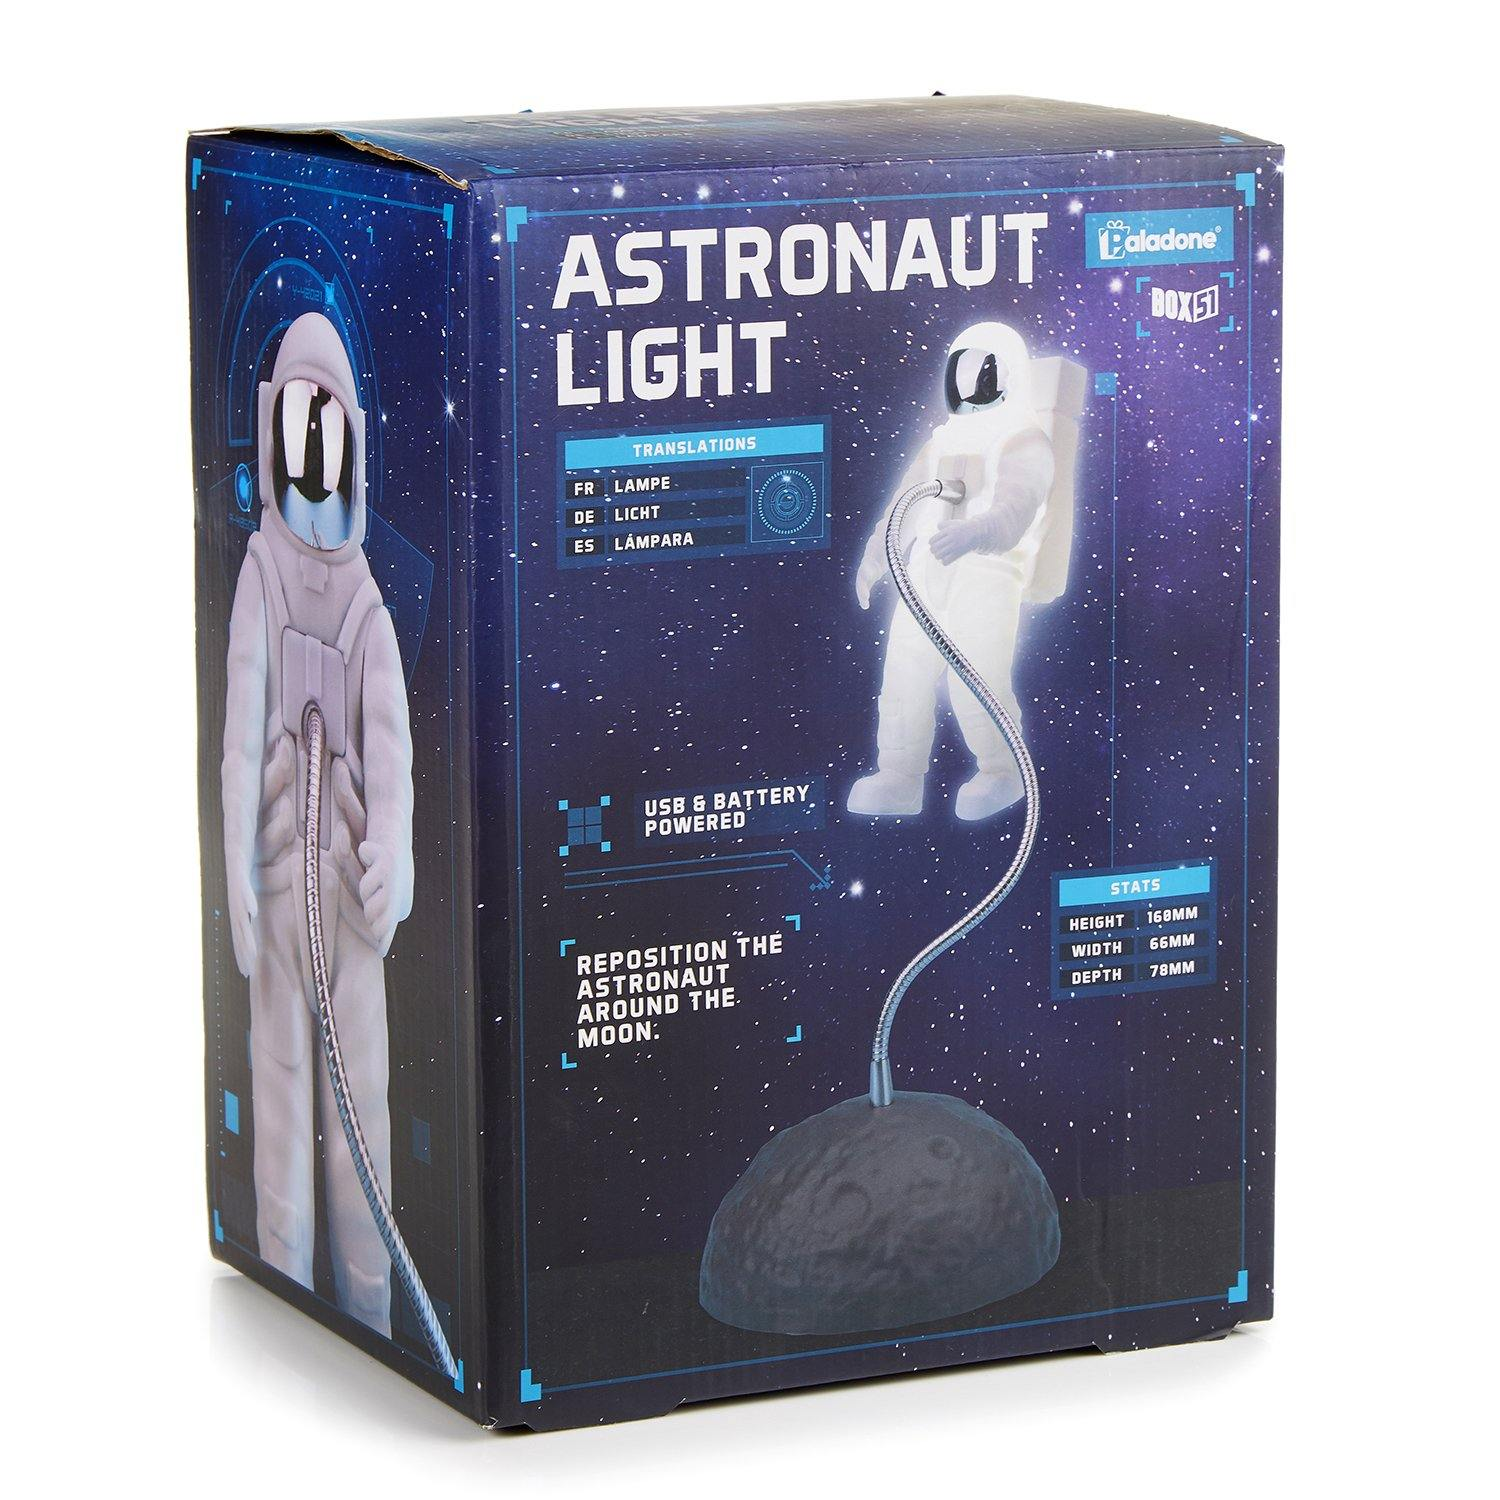 Astronaut floating light box - side